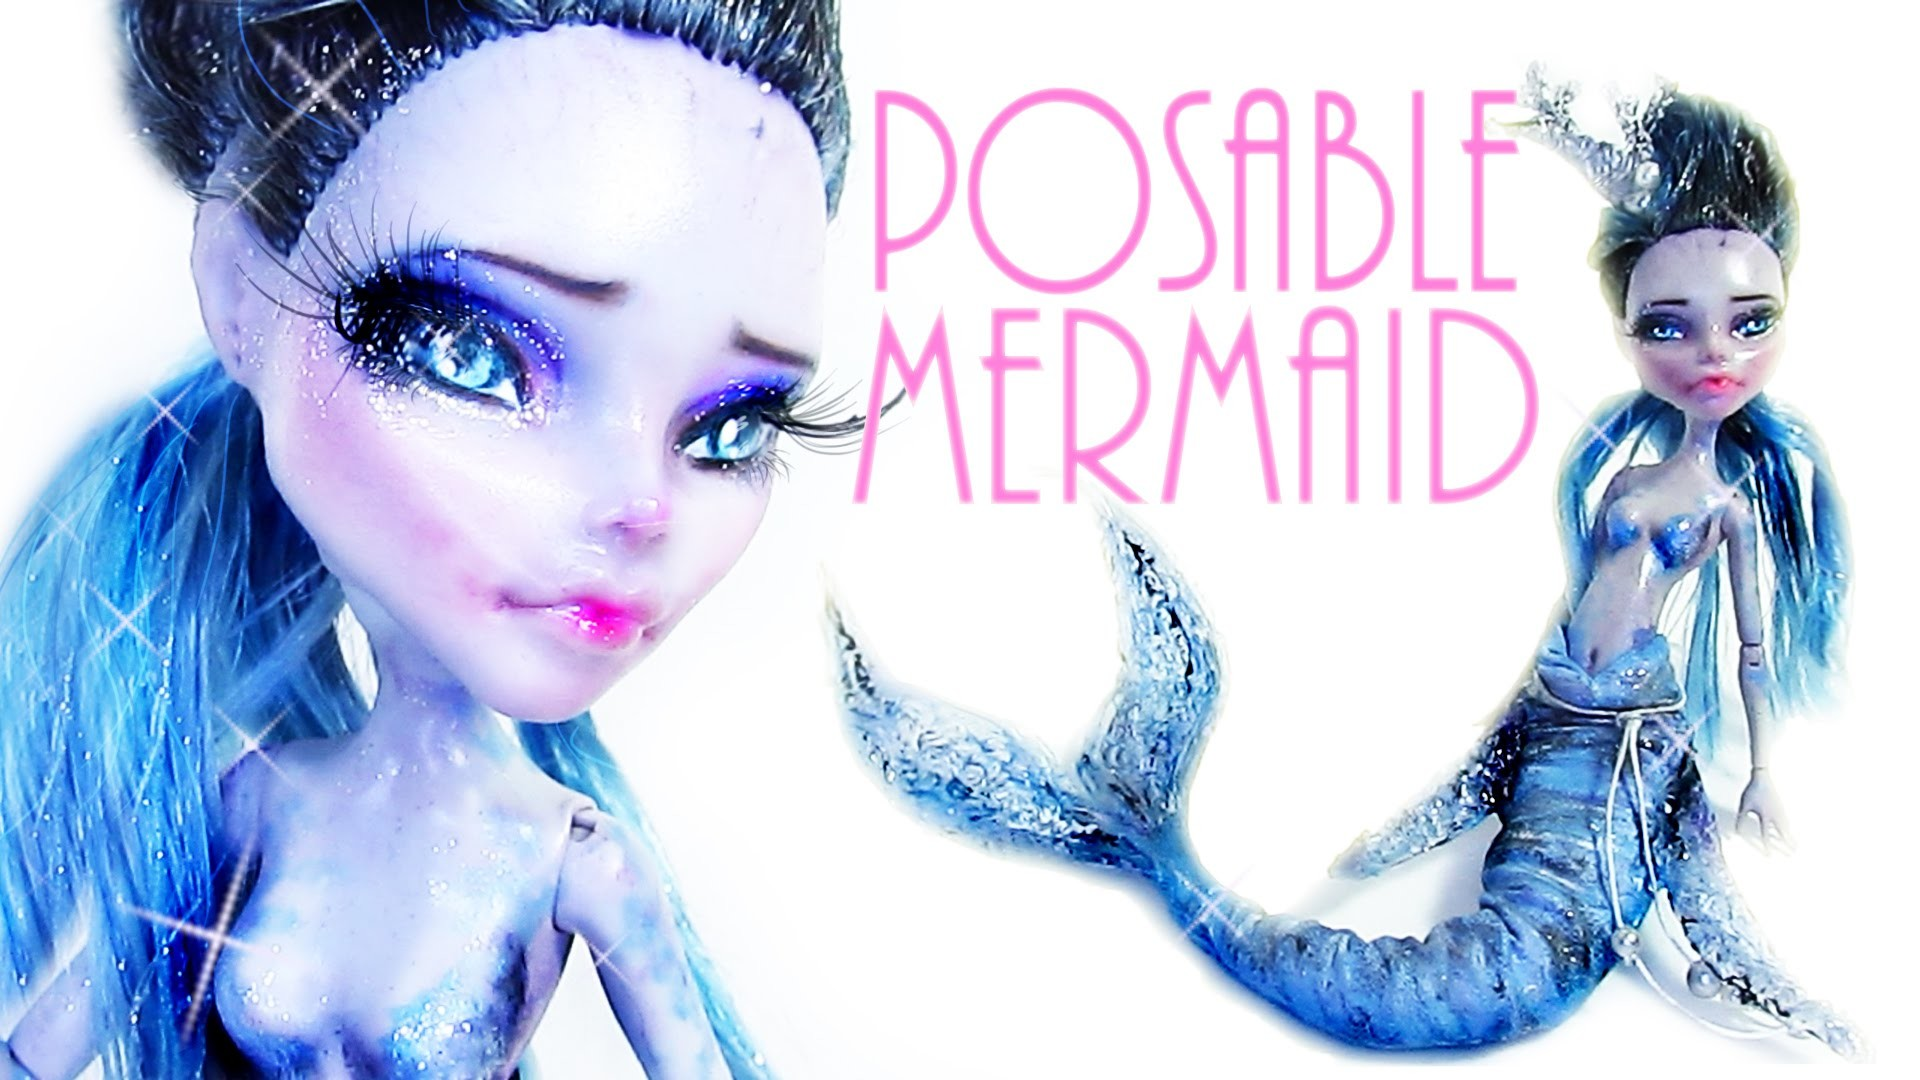 How to make a Posable Mermaid [Rescued Ghoulia]